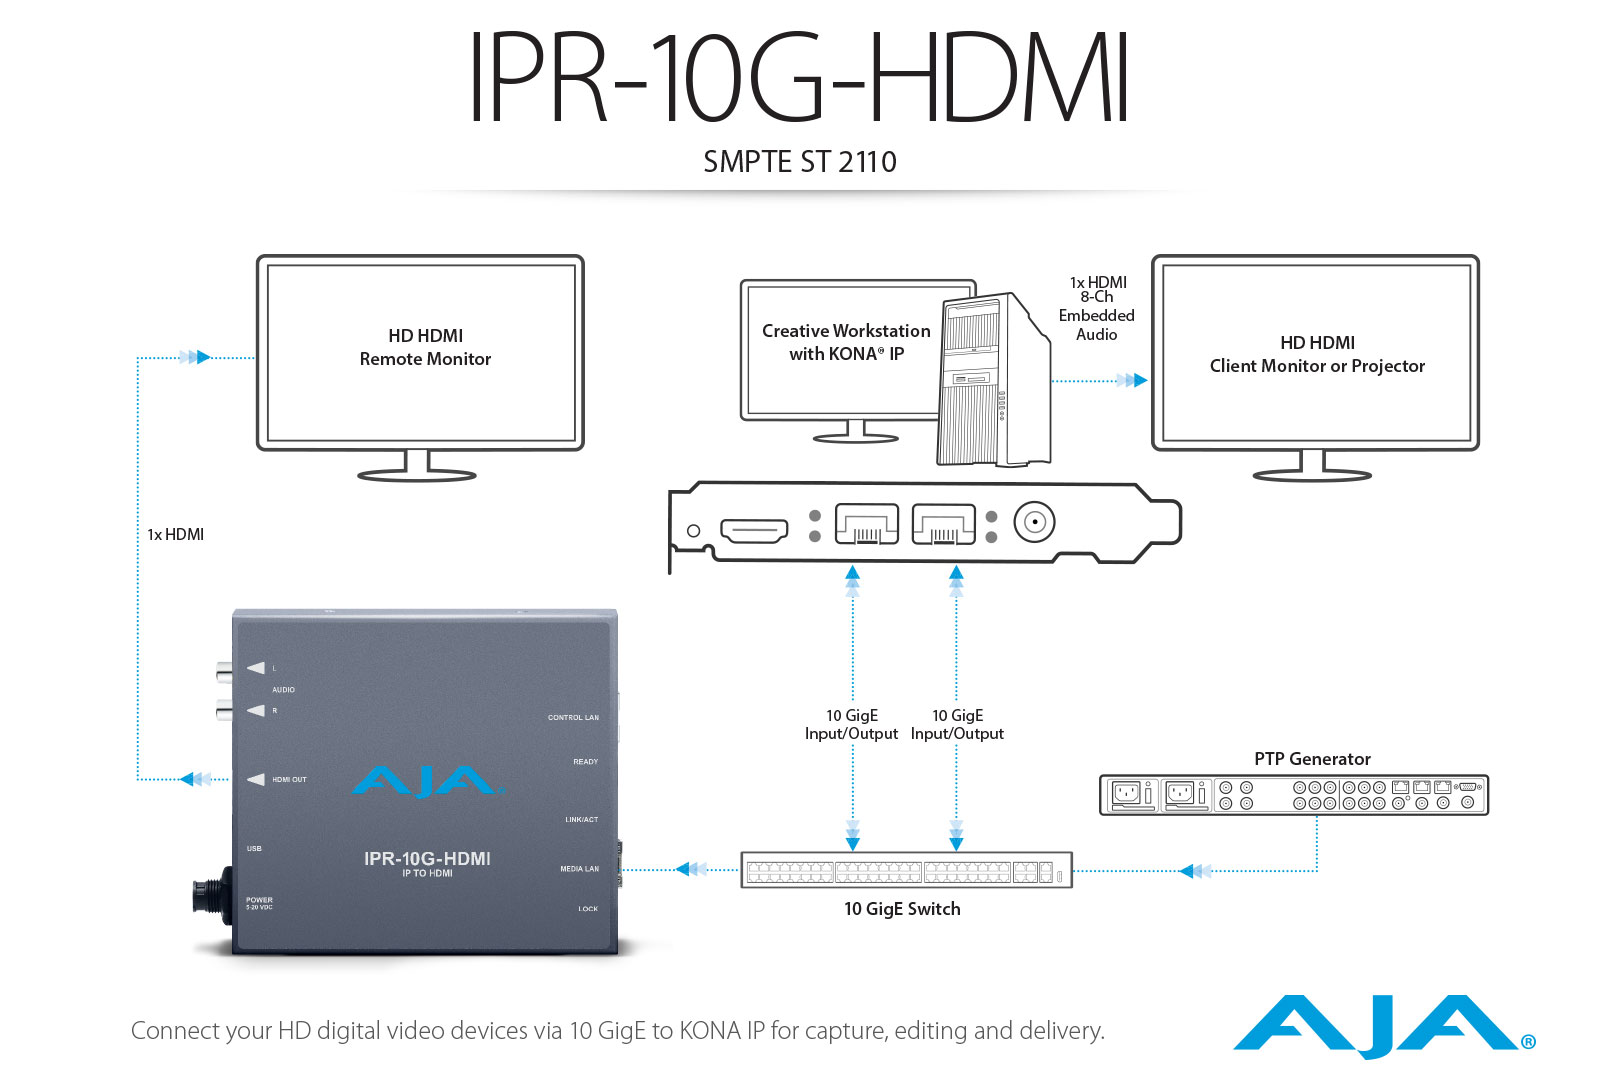 IPR-10G-HDMI - Bridging SMPTE ST 2110 Video and Audio to HDMI - IP